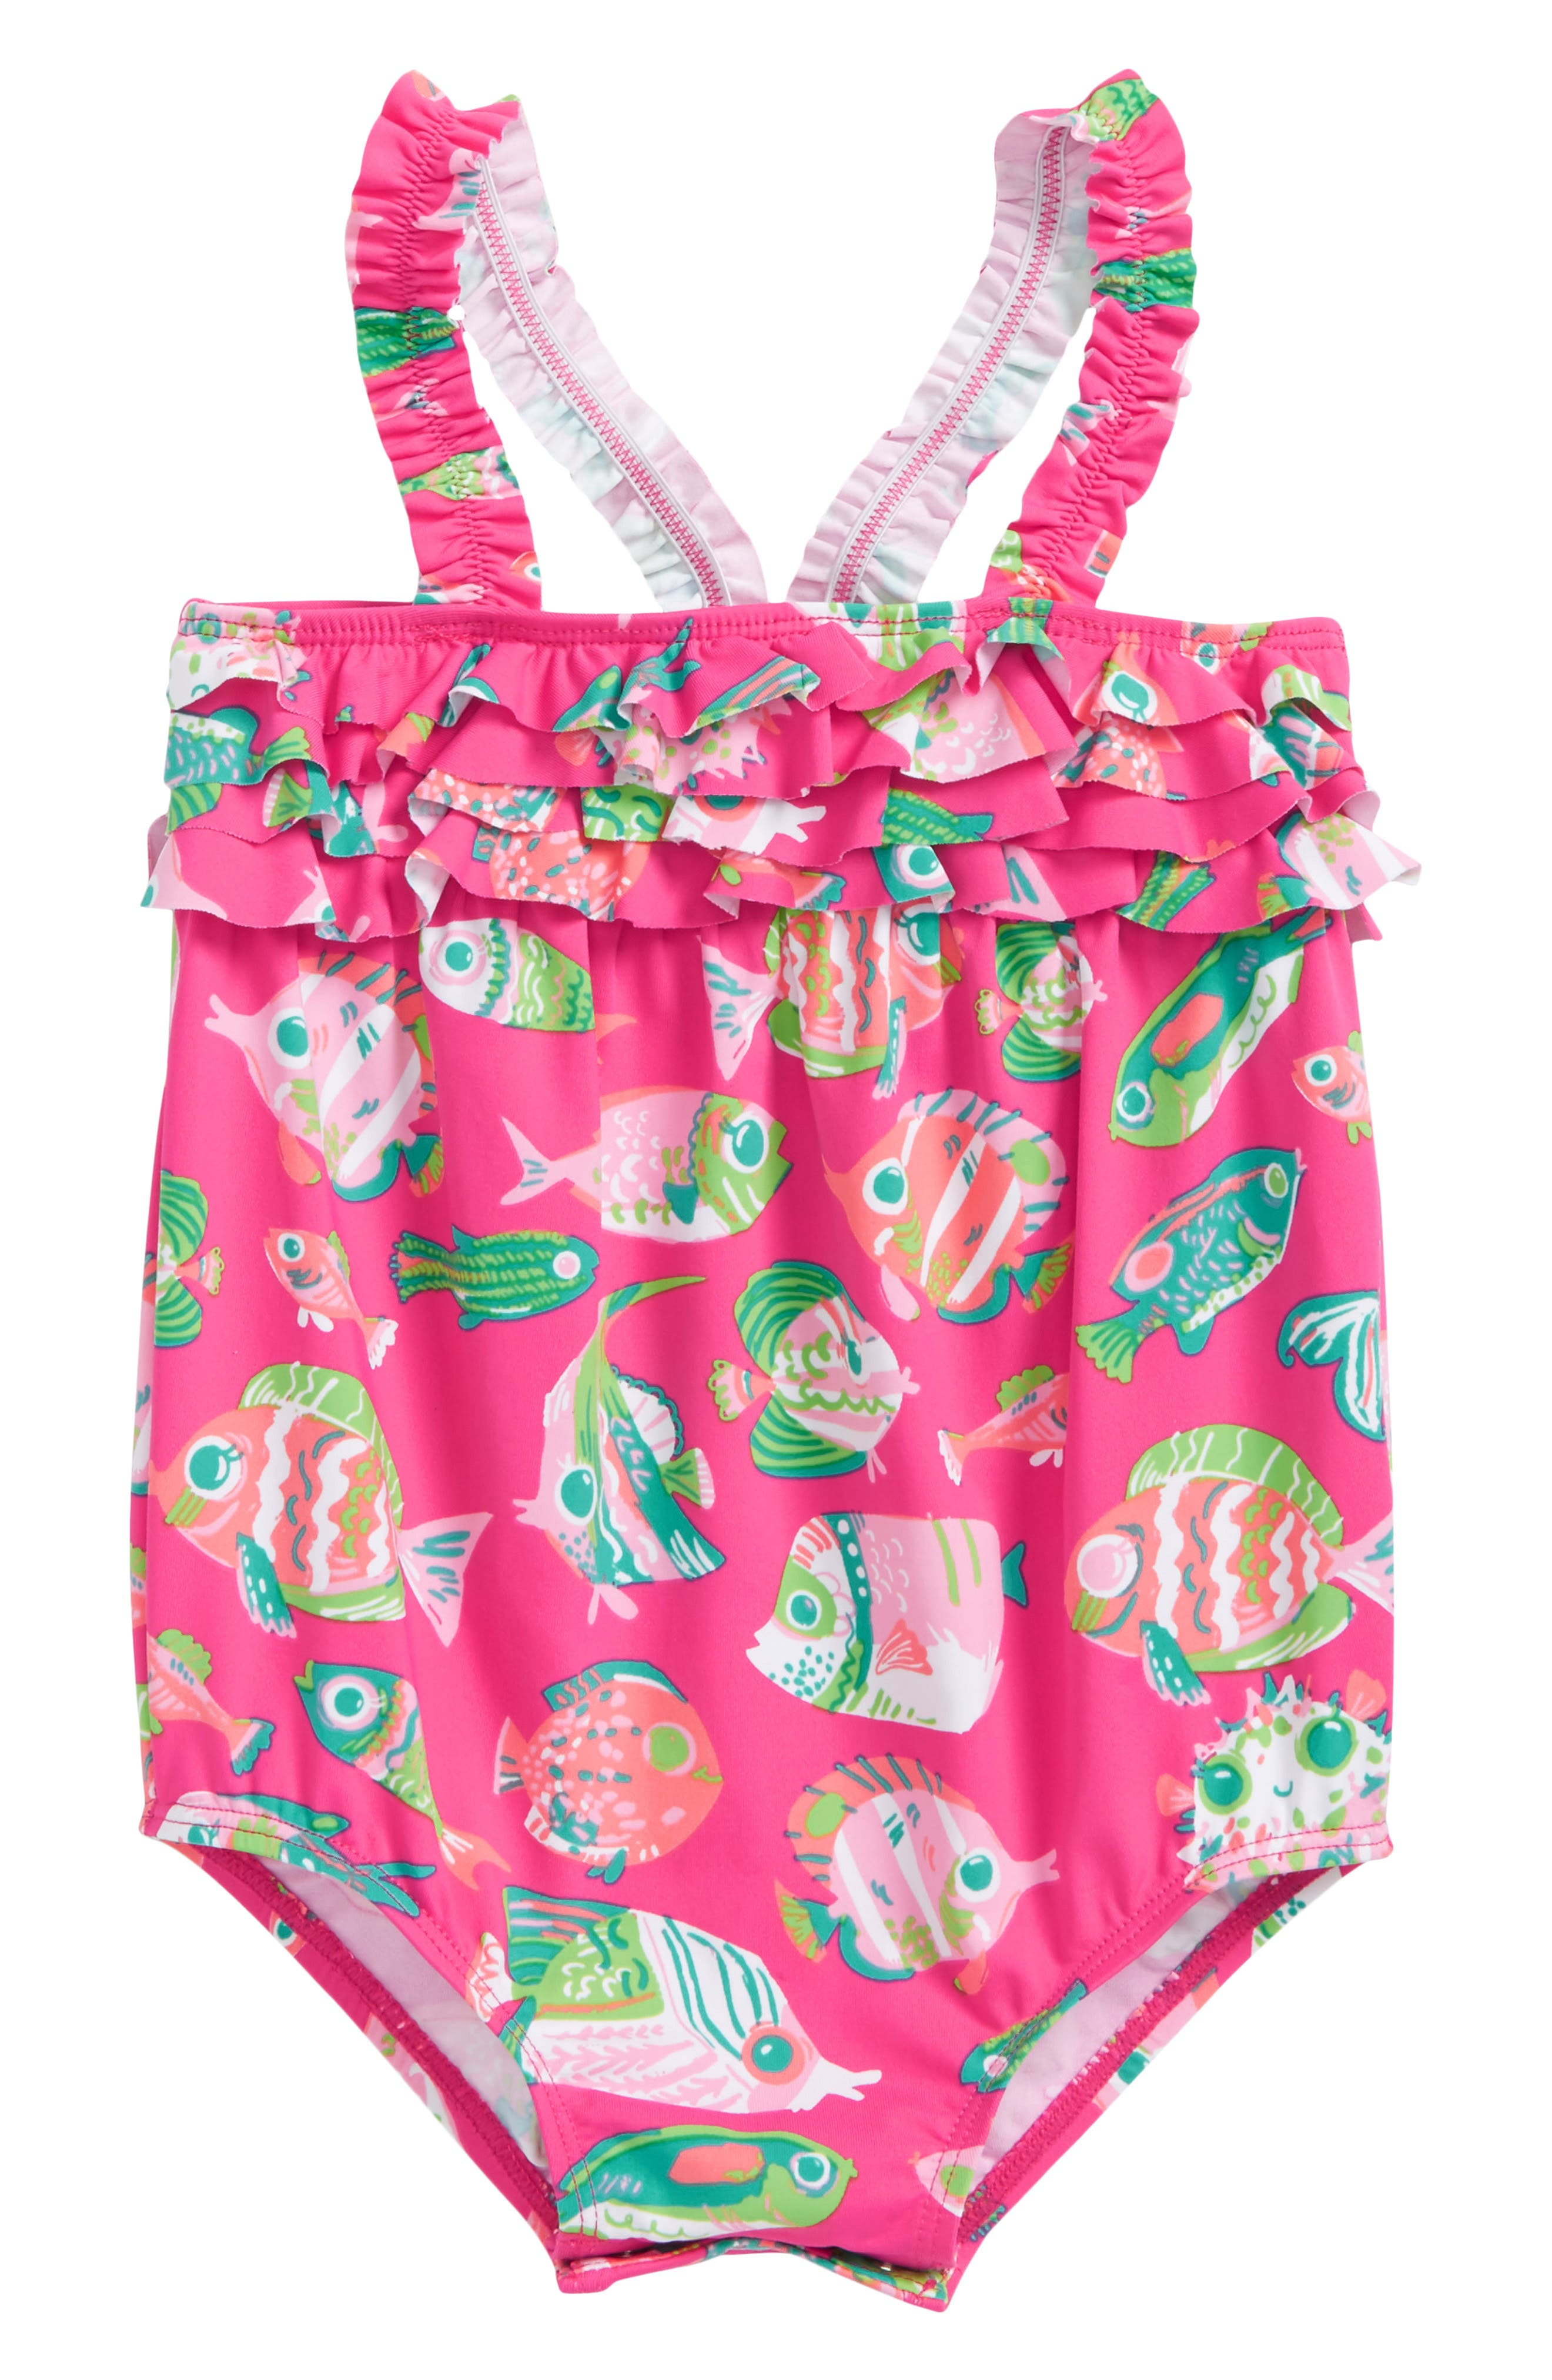 Alternate Image 1 Selected - Hatley Fish One-Piece Swimsuit (Baby Girls)